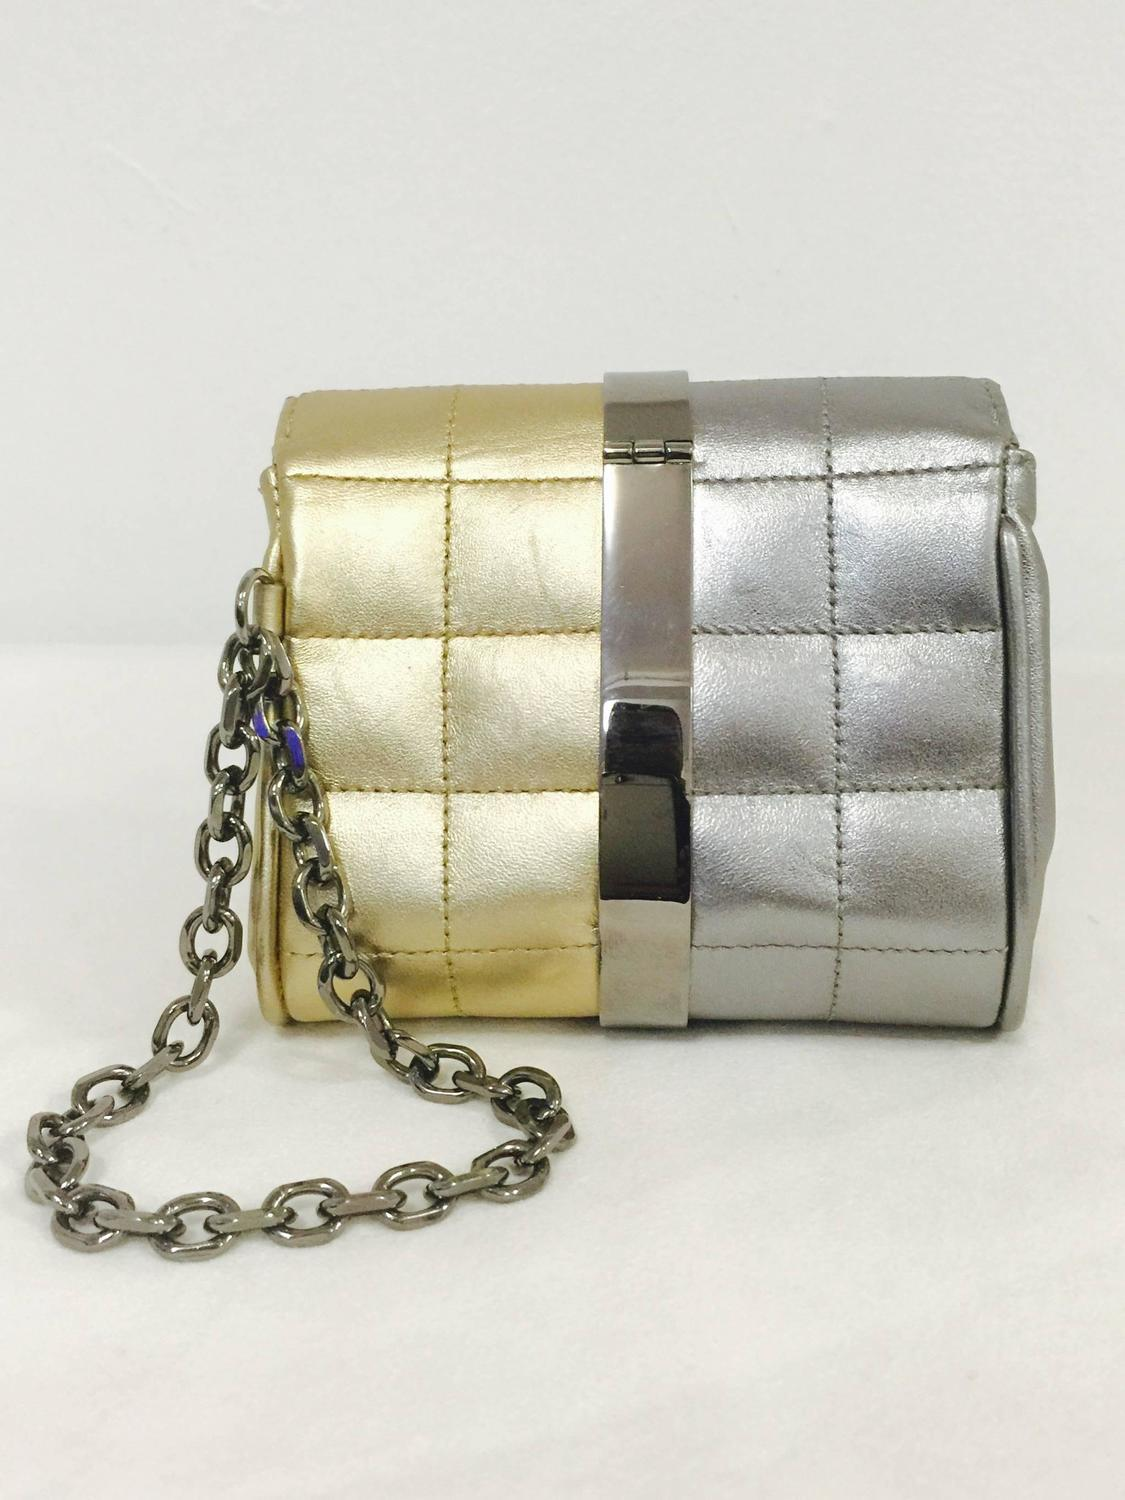 ac4497c37f57 Chanel 2005 Bag Collection | Stanford Center for Opportunity Policy ...